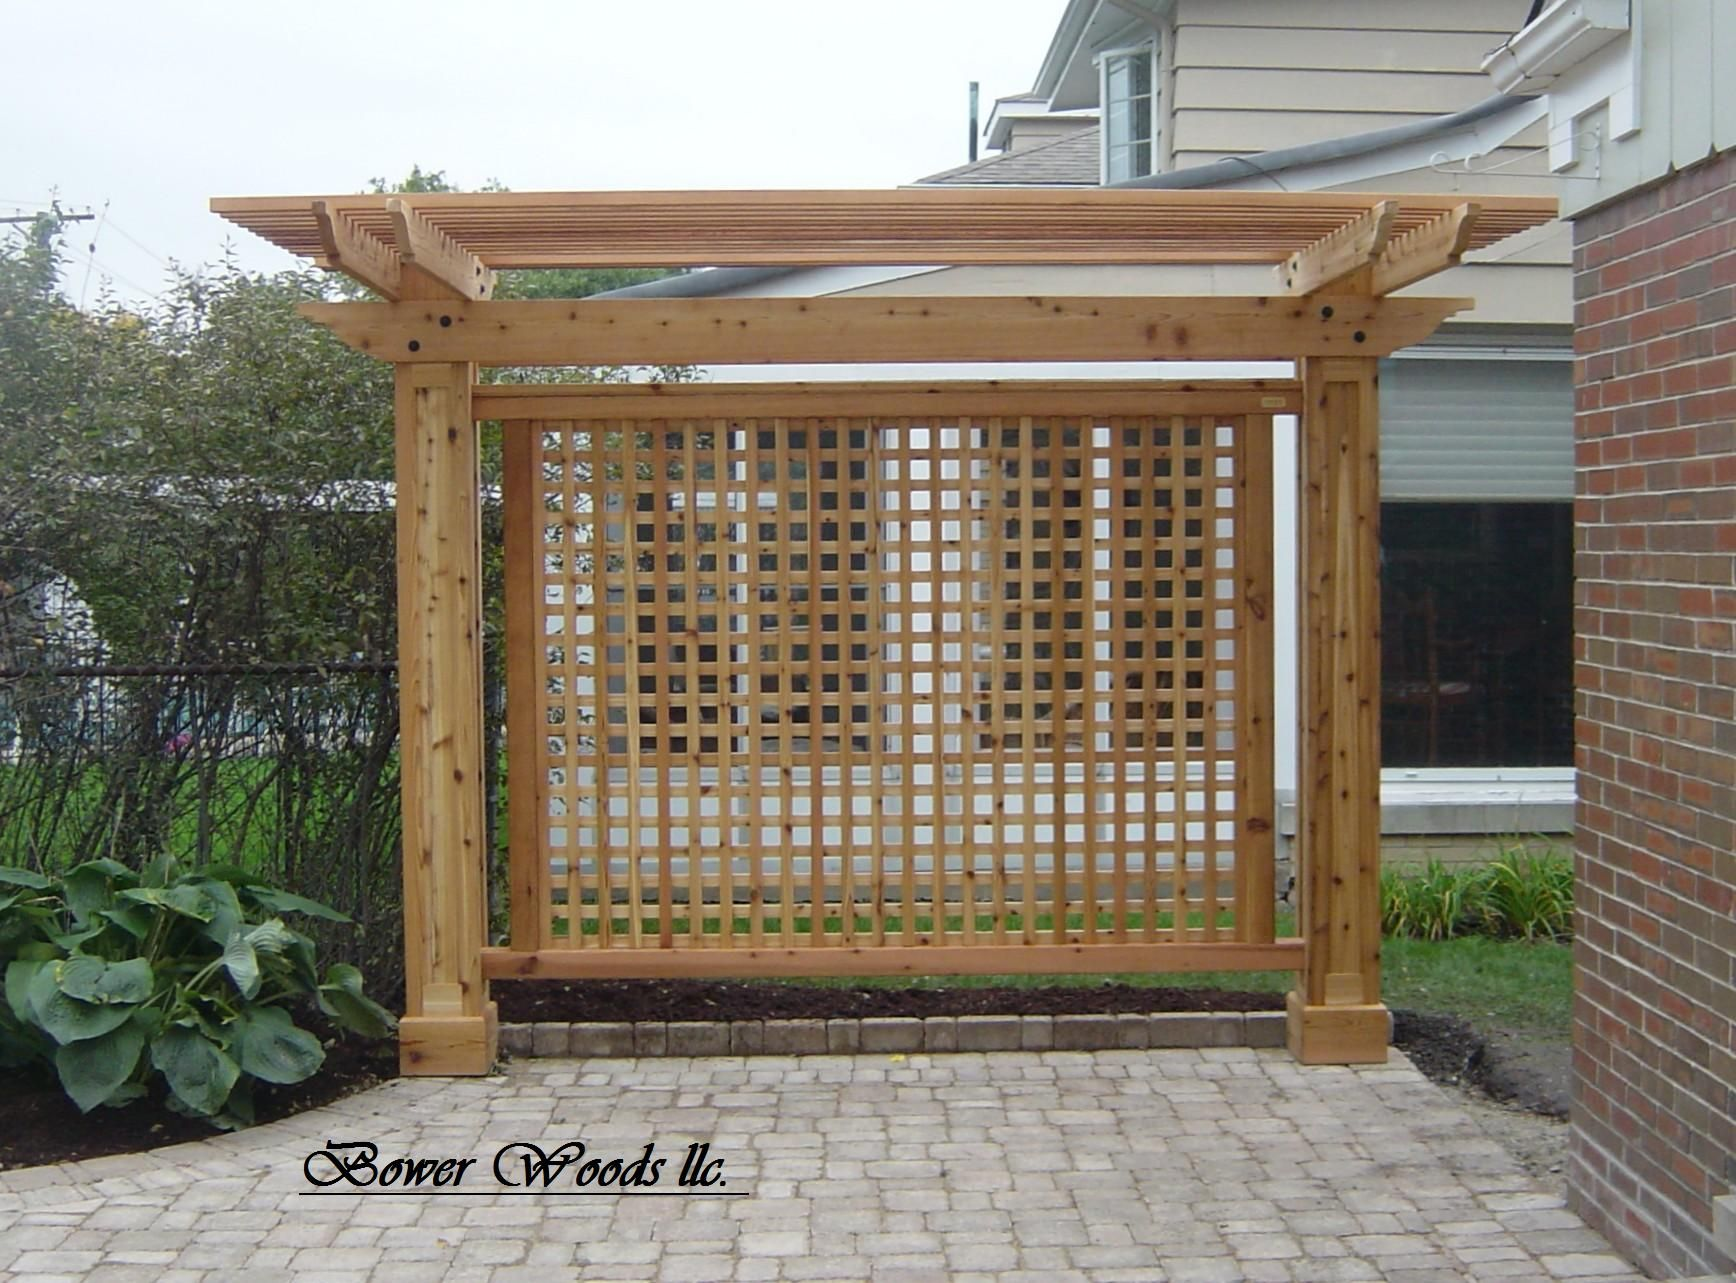 Trellis Design Ideas garden trellis design decorations ideas Trellis Designs Wonderful To Use As Screening Or Simple Accents Trellis Also